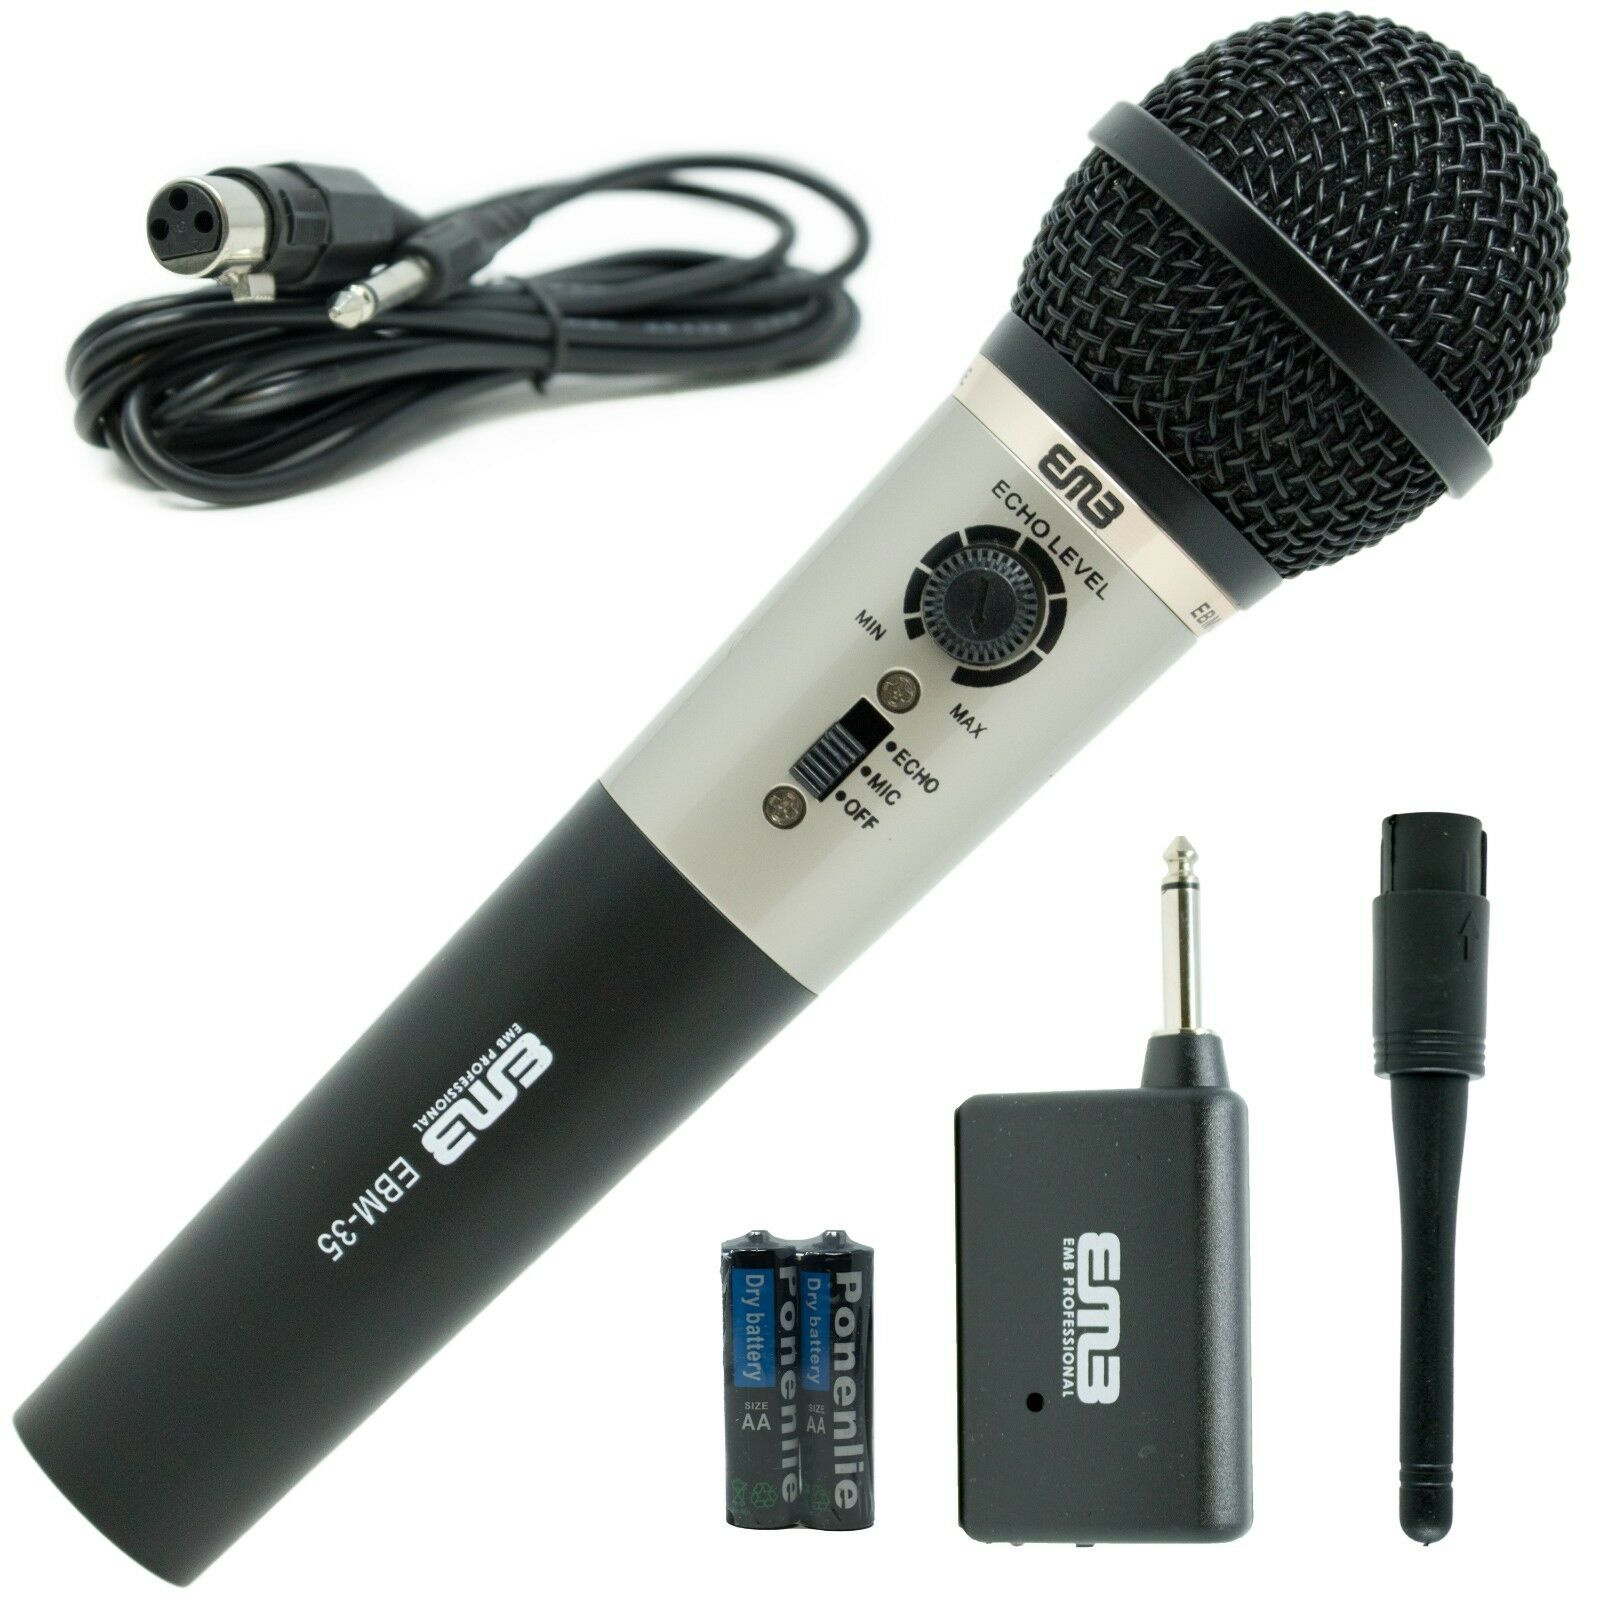 EMB Professional Handheld Wireless Microphone W/ Echo   For